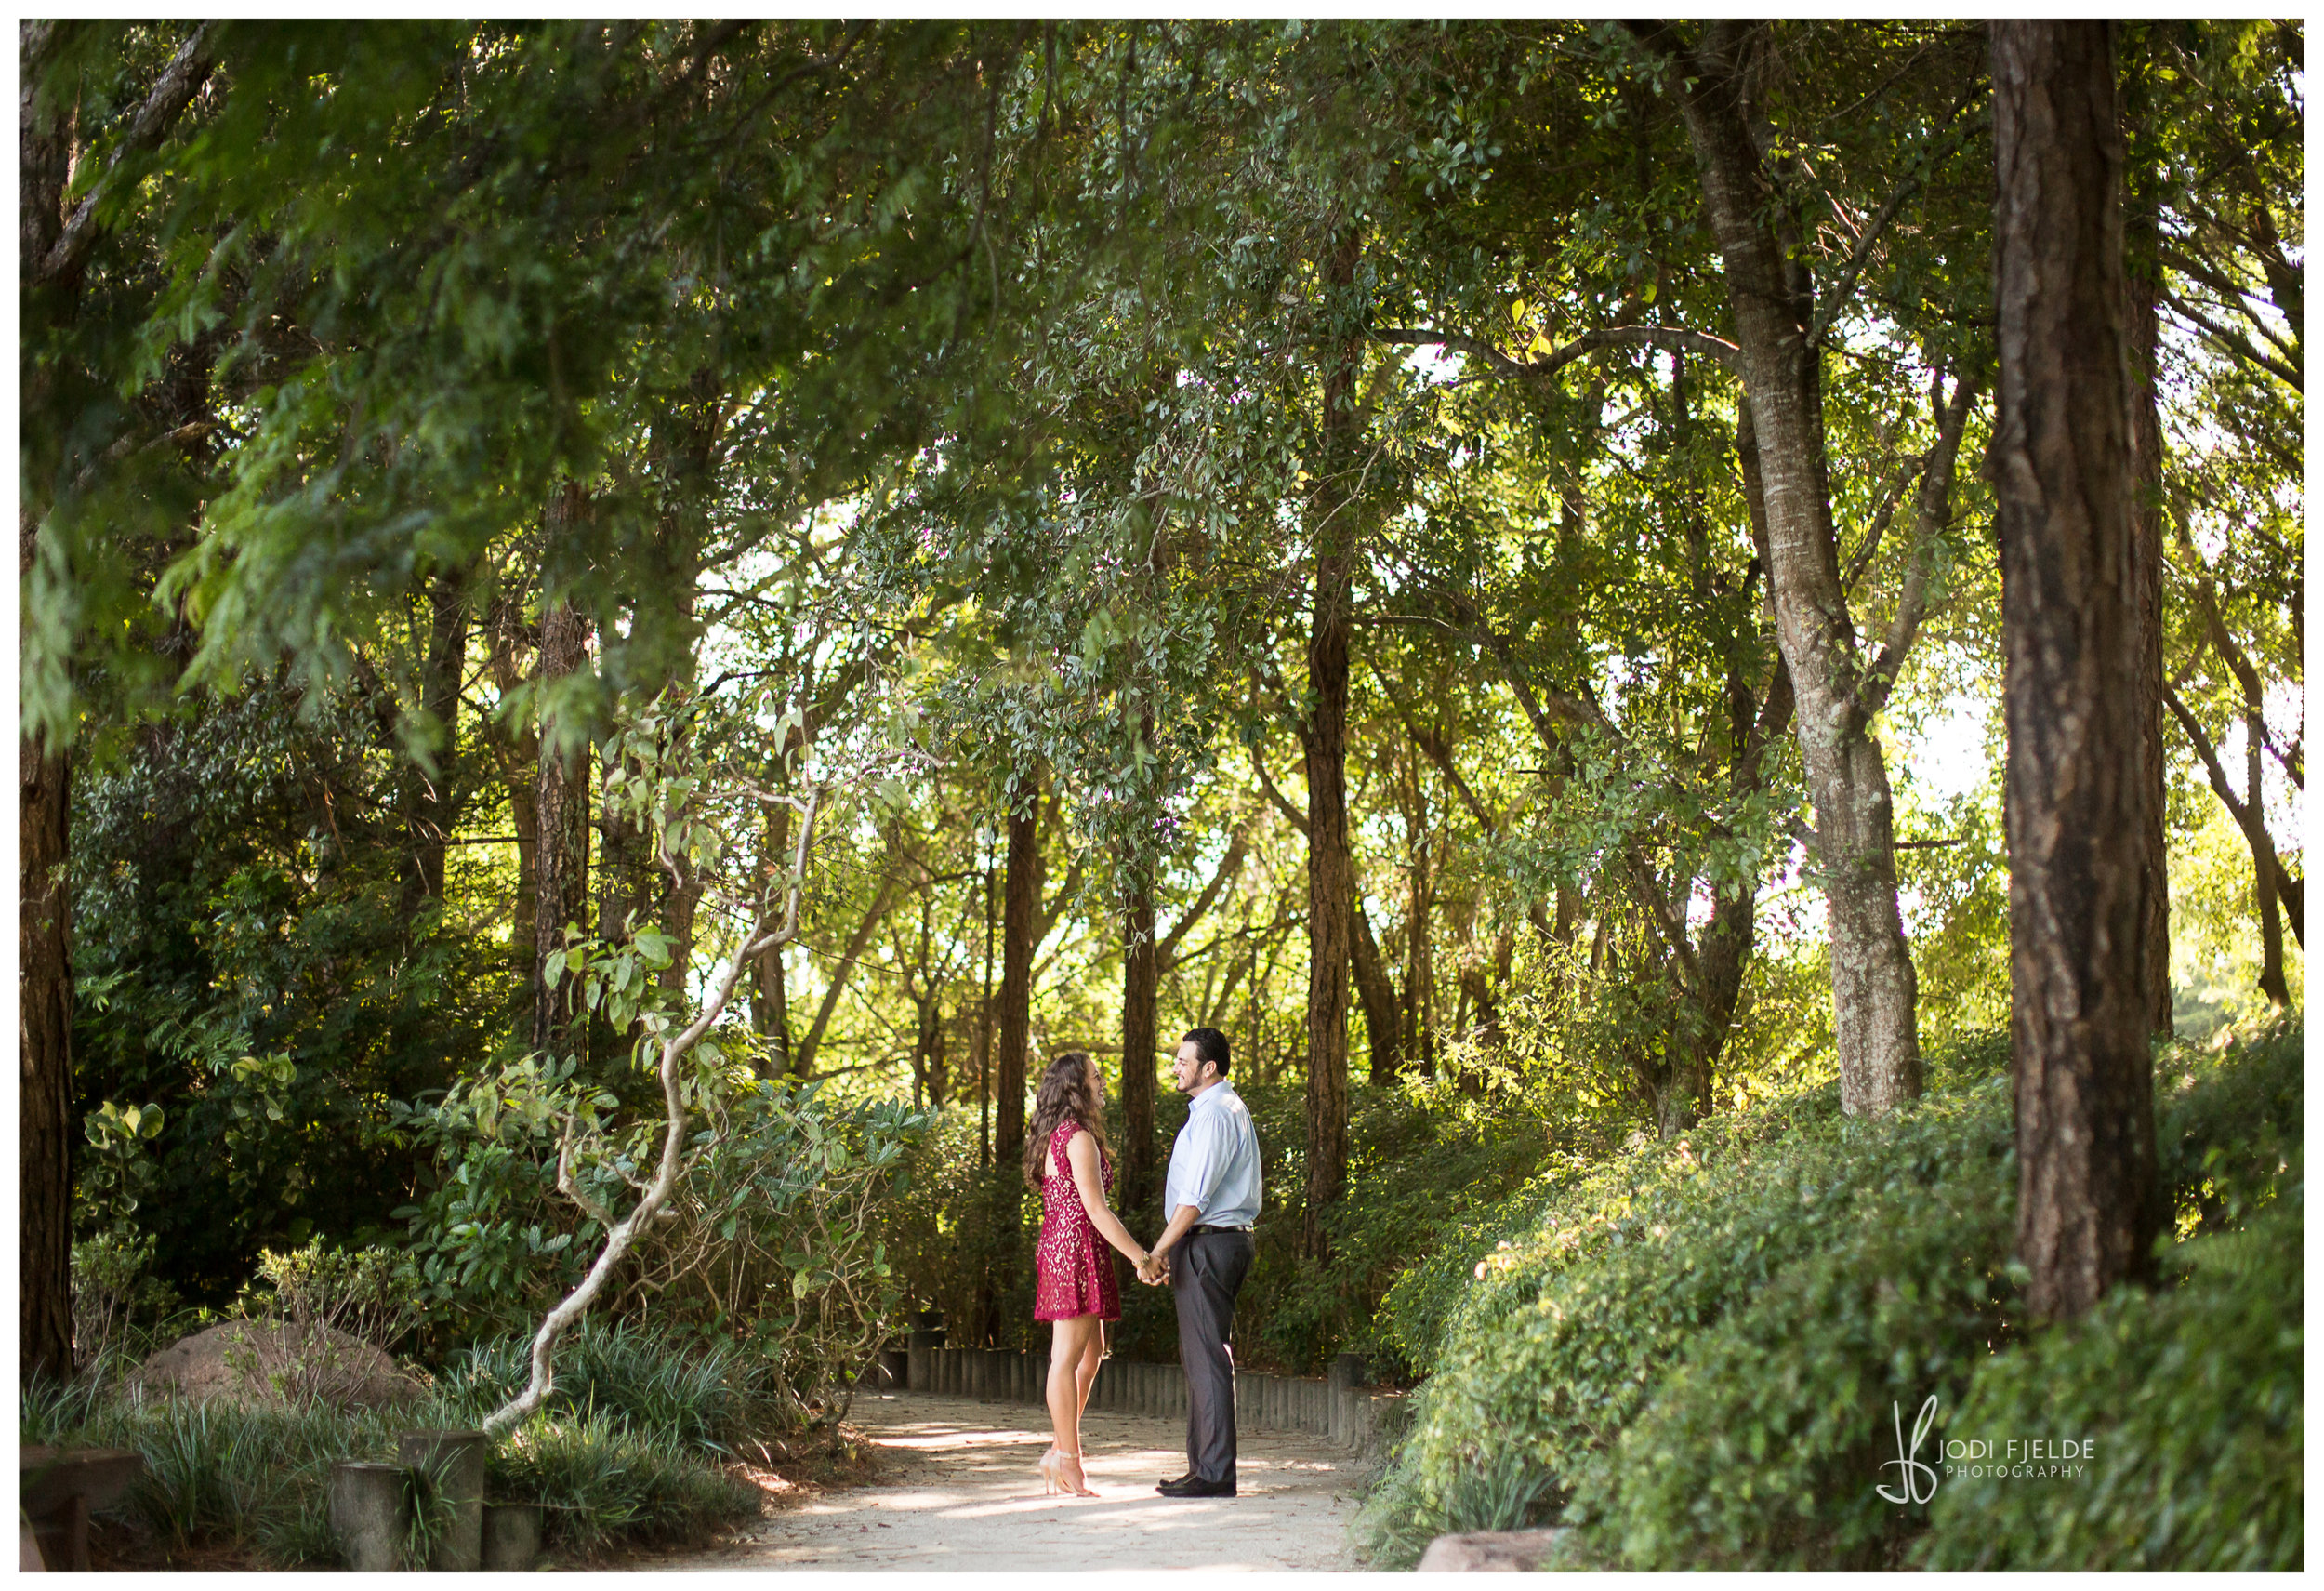 Morikami_Museum_Gardens_Delray_Beach_Engagement_Heather_and Doug_1.jpg